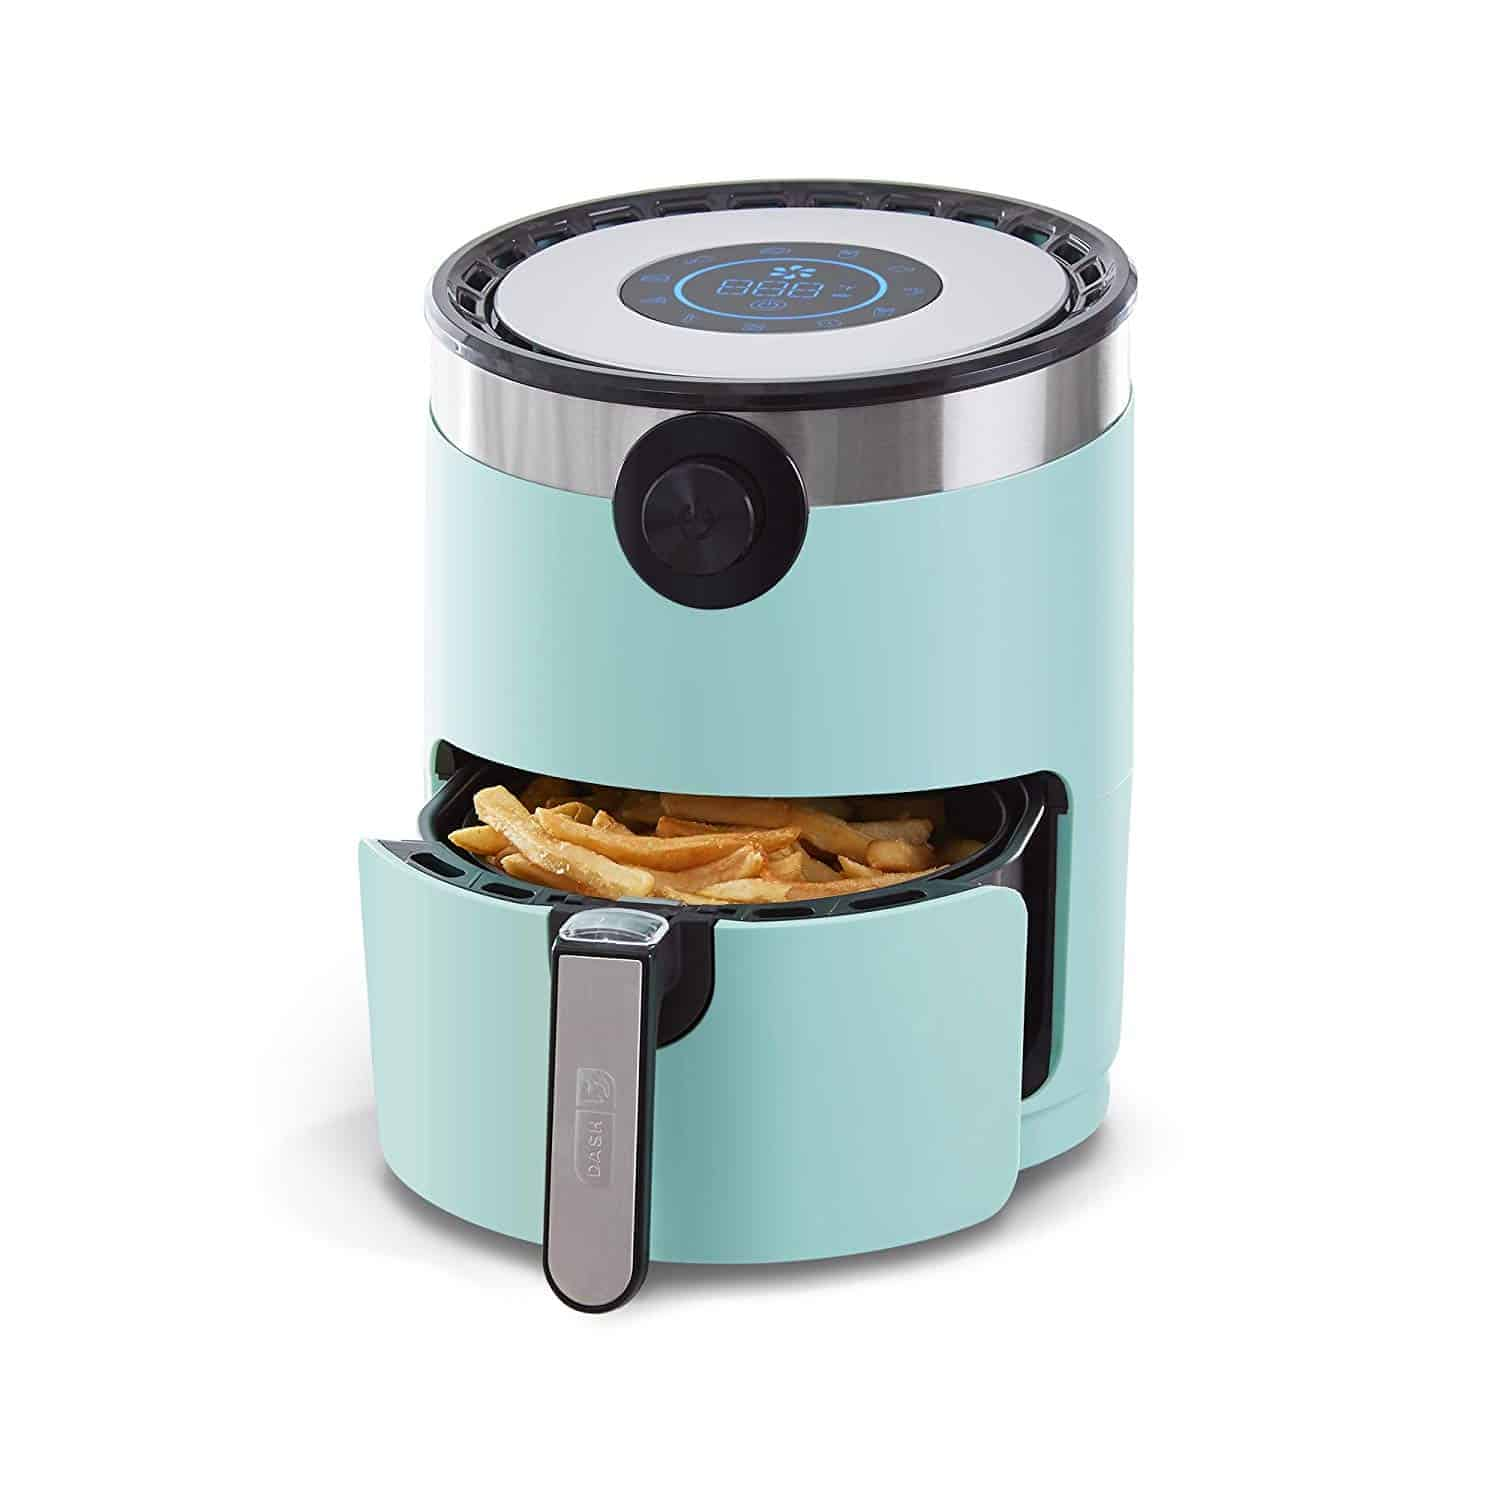 Save up to 30% on Dash Air Fryers - Amazon